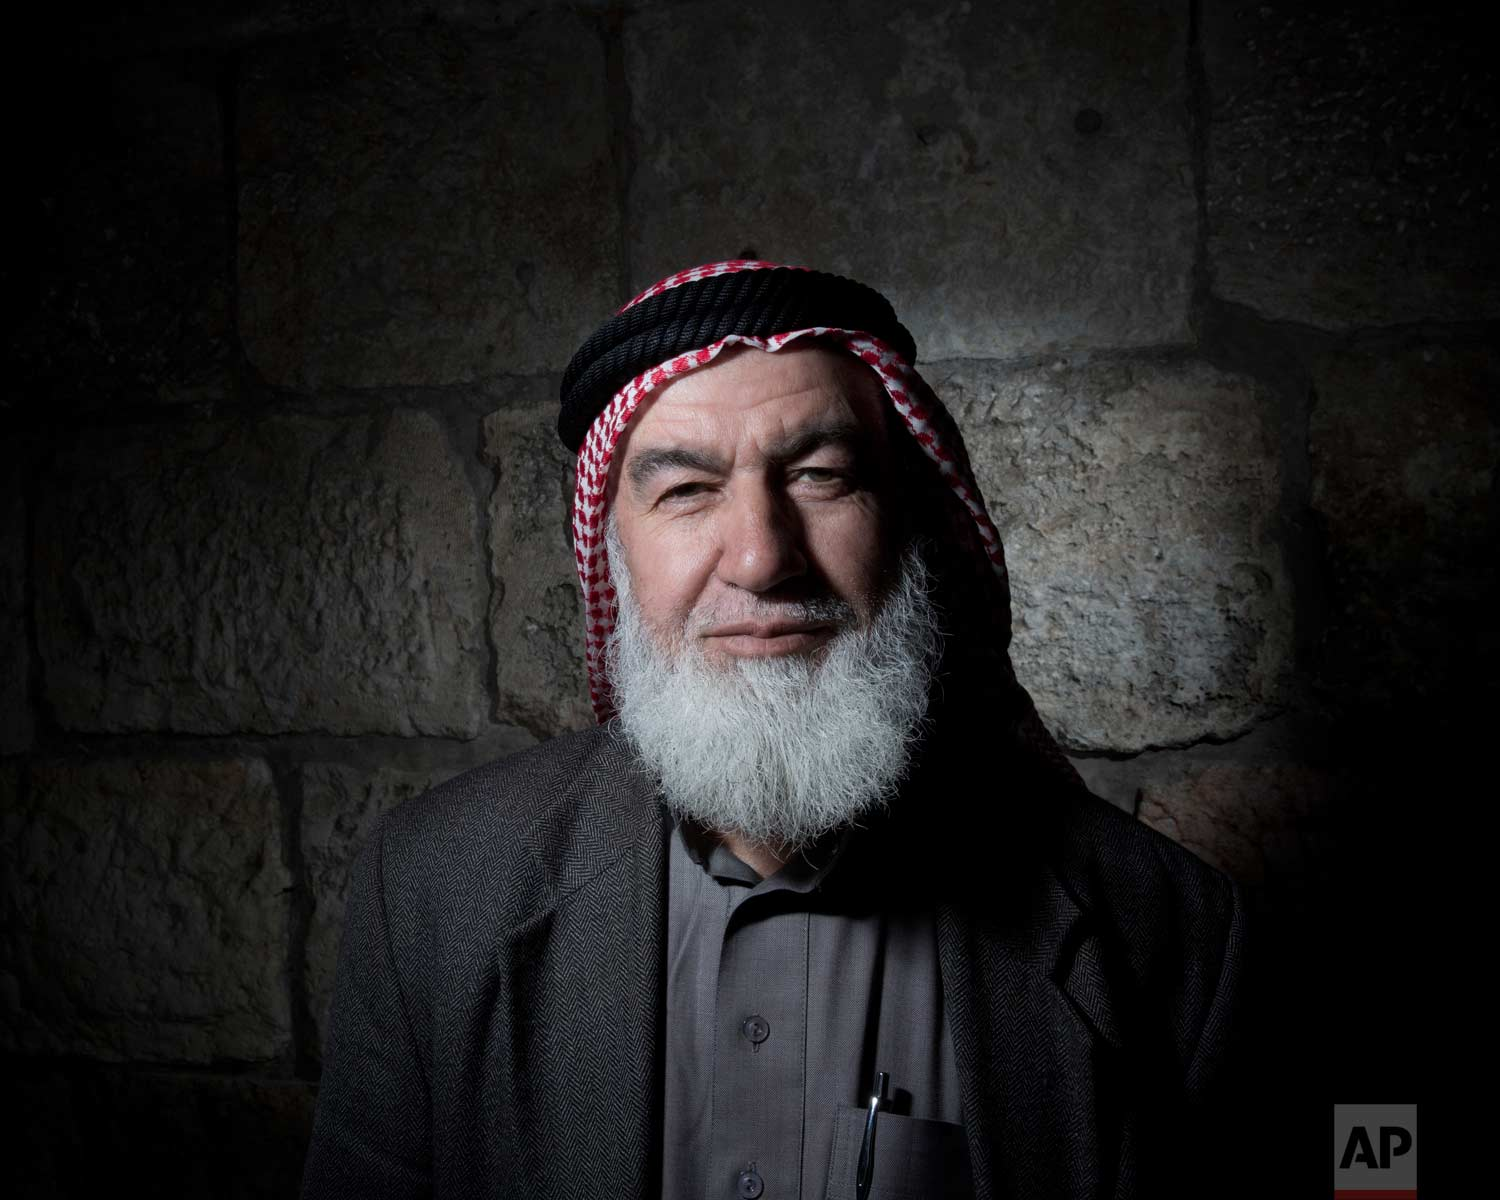 In this Sunday, Feb. 11, 2018 photo, Ebrahim Hamada poses for a portrait in Jerusalem's Old City. (AP Photo/Oded Balilty)